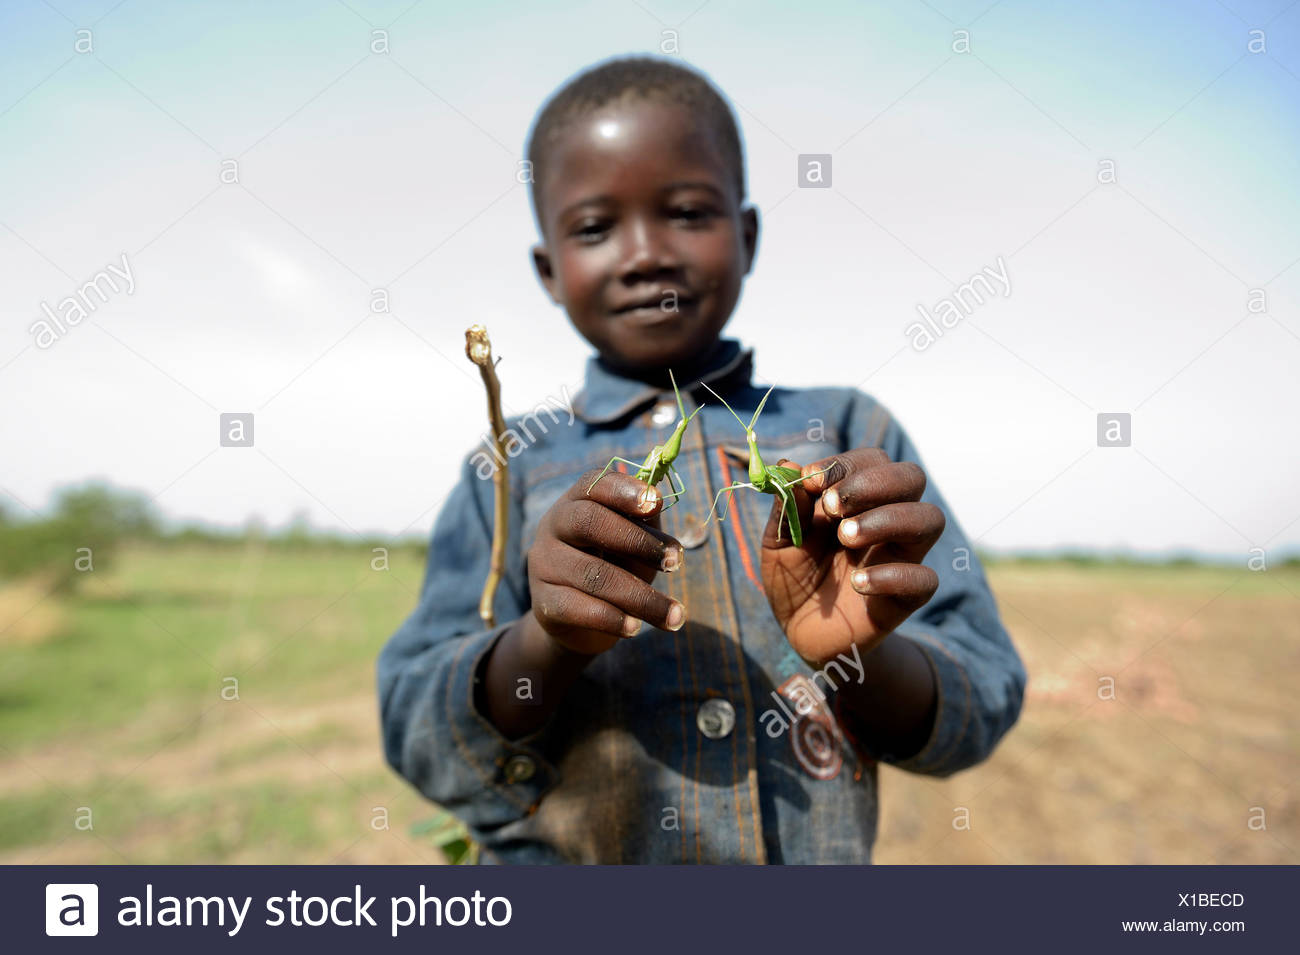 Boy, 7 years, with two mantises, Gomponsom, Passoré Province, Northern Region, Burkina Faso - Stock Image